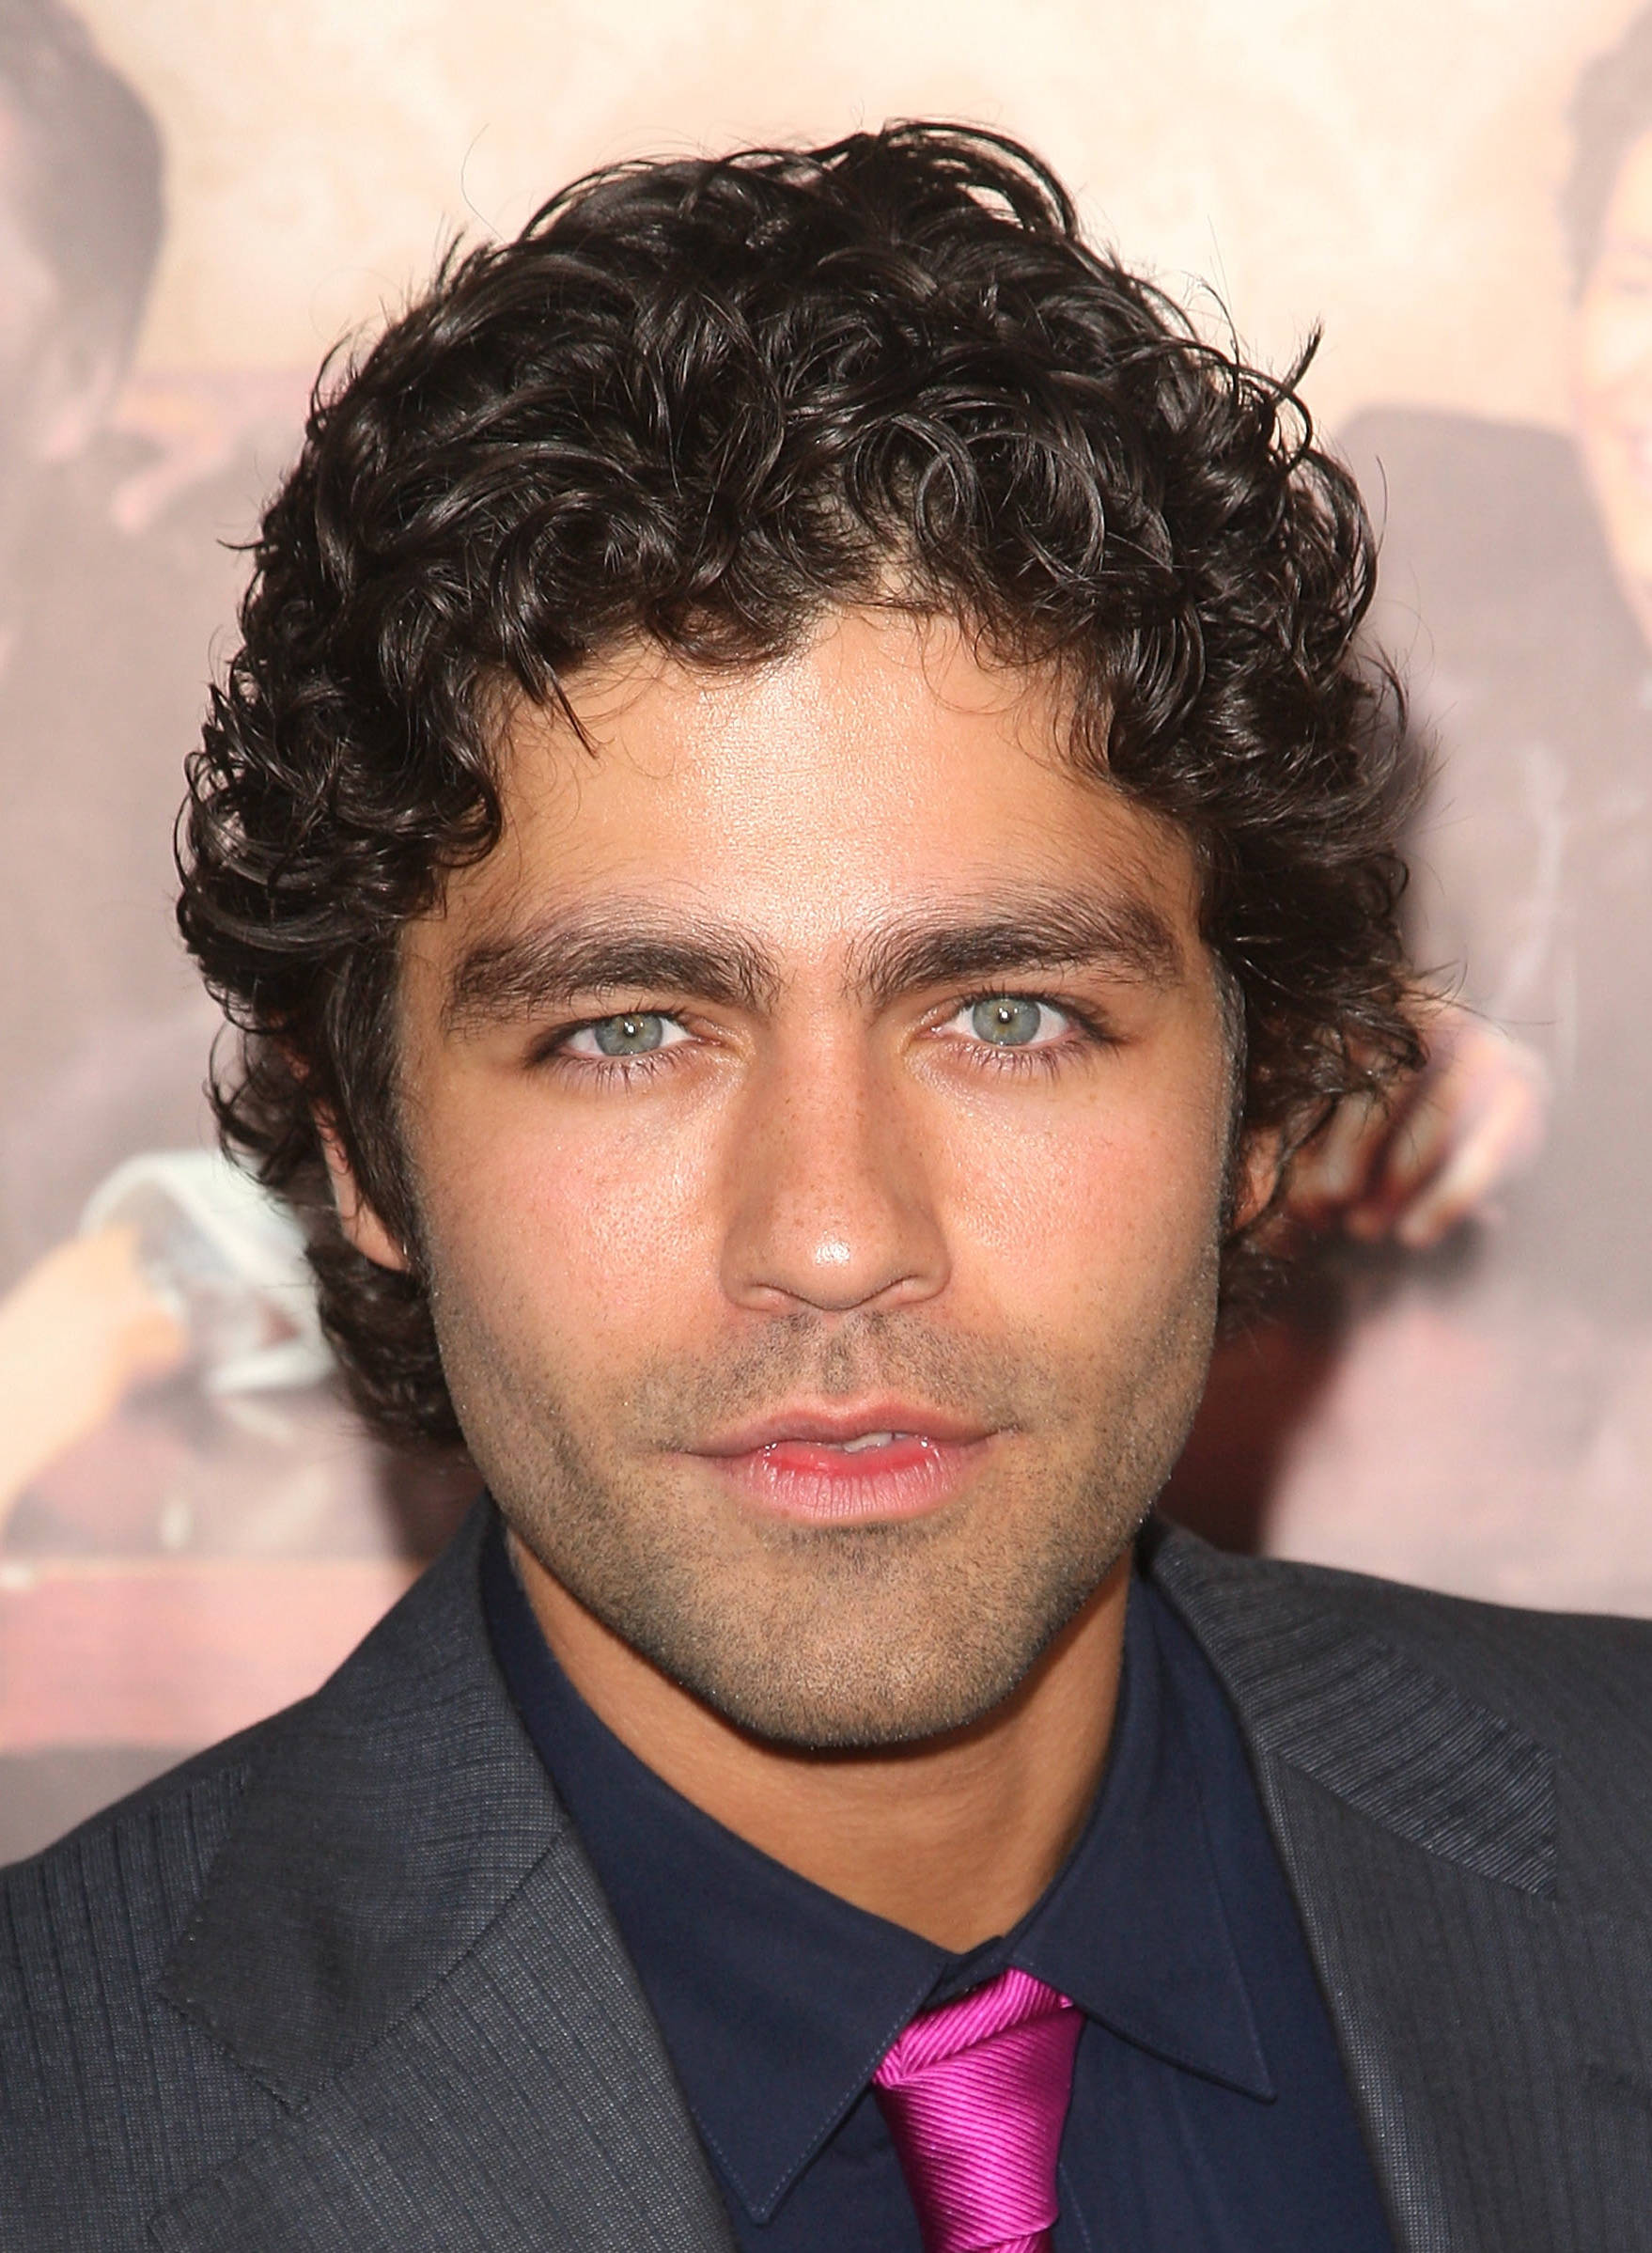 Curly-Hairstyle-For-Men.jpg